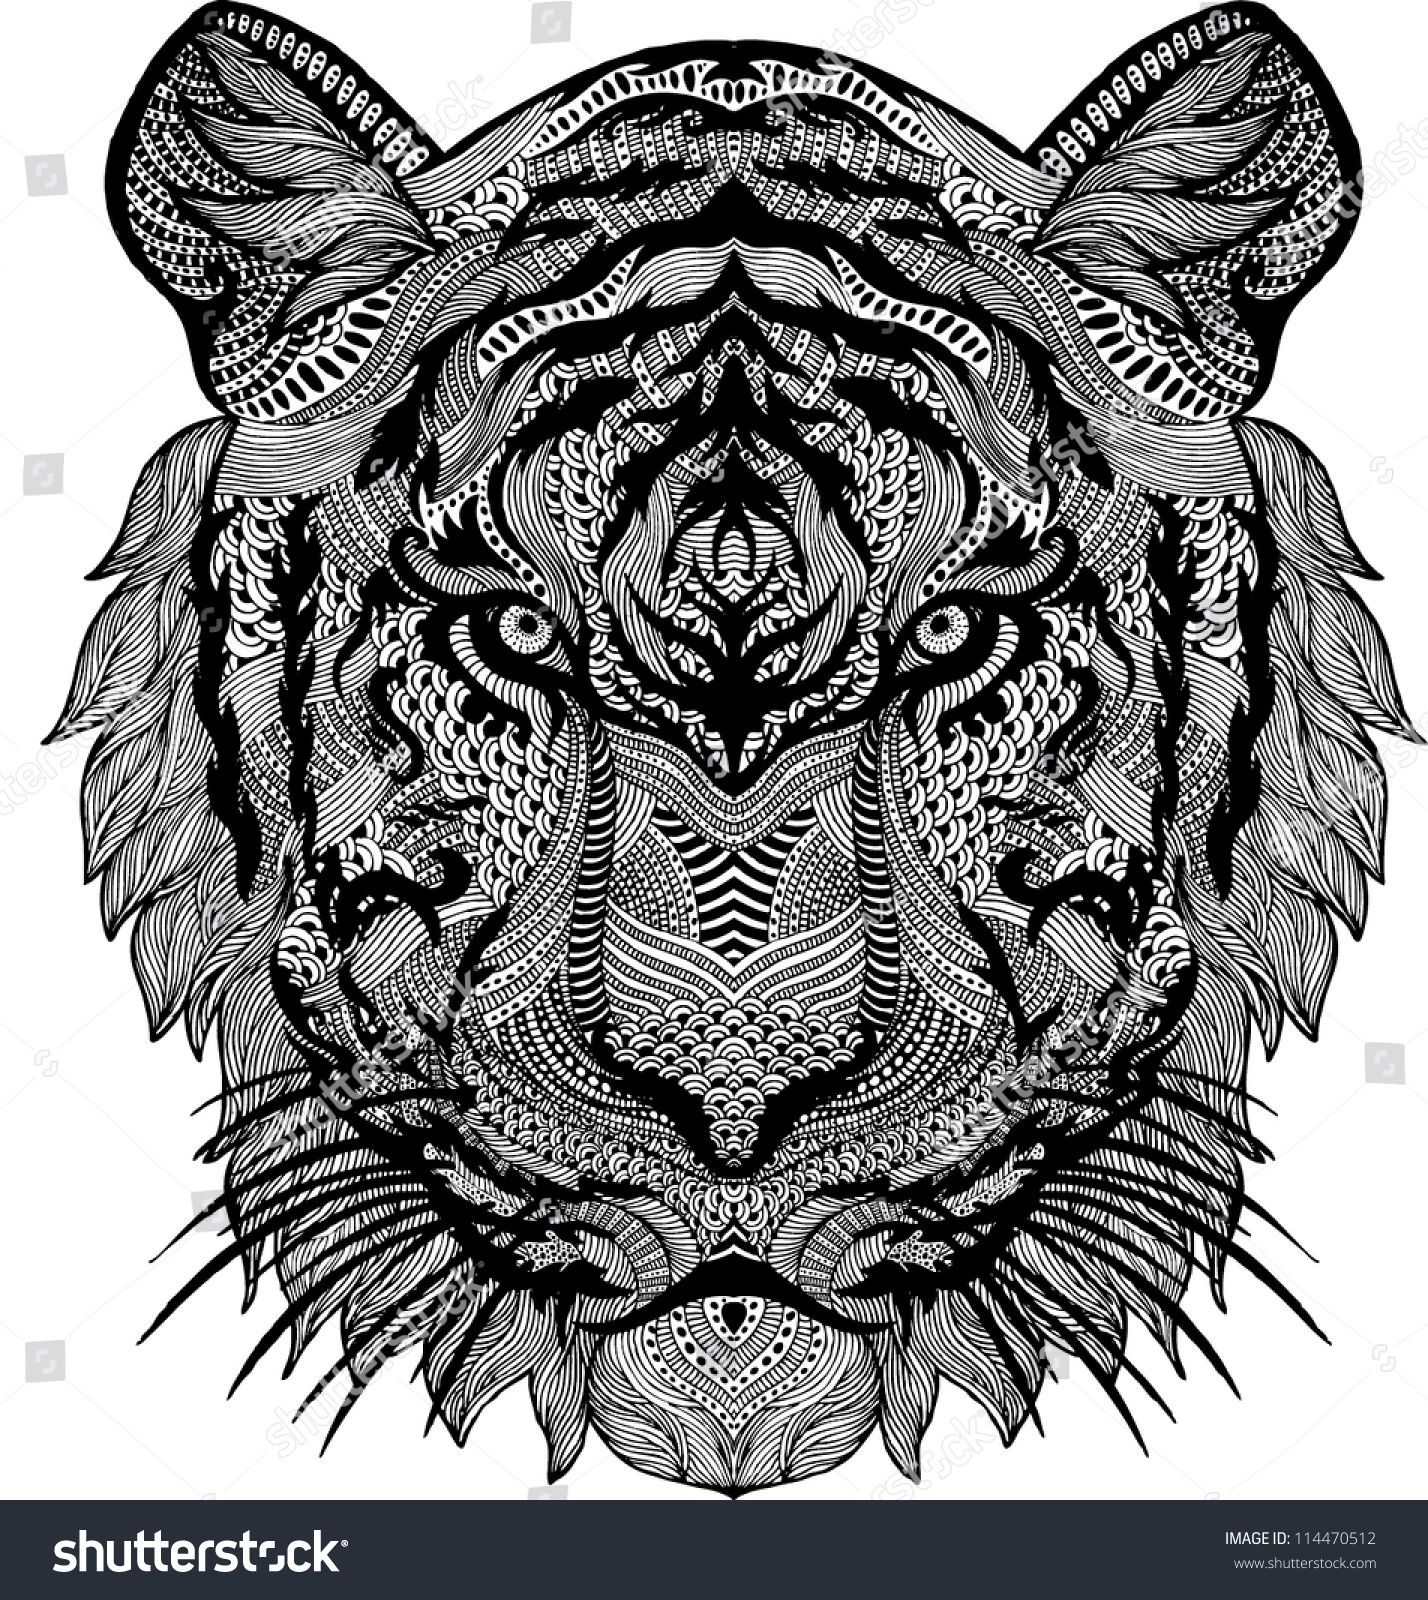 Psychedelic tiger tattoo - photo#10